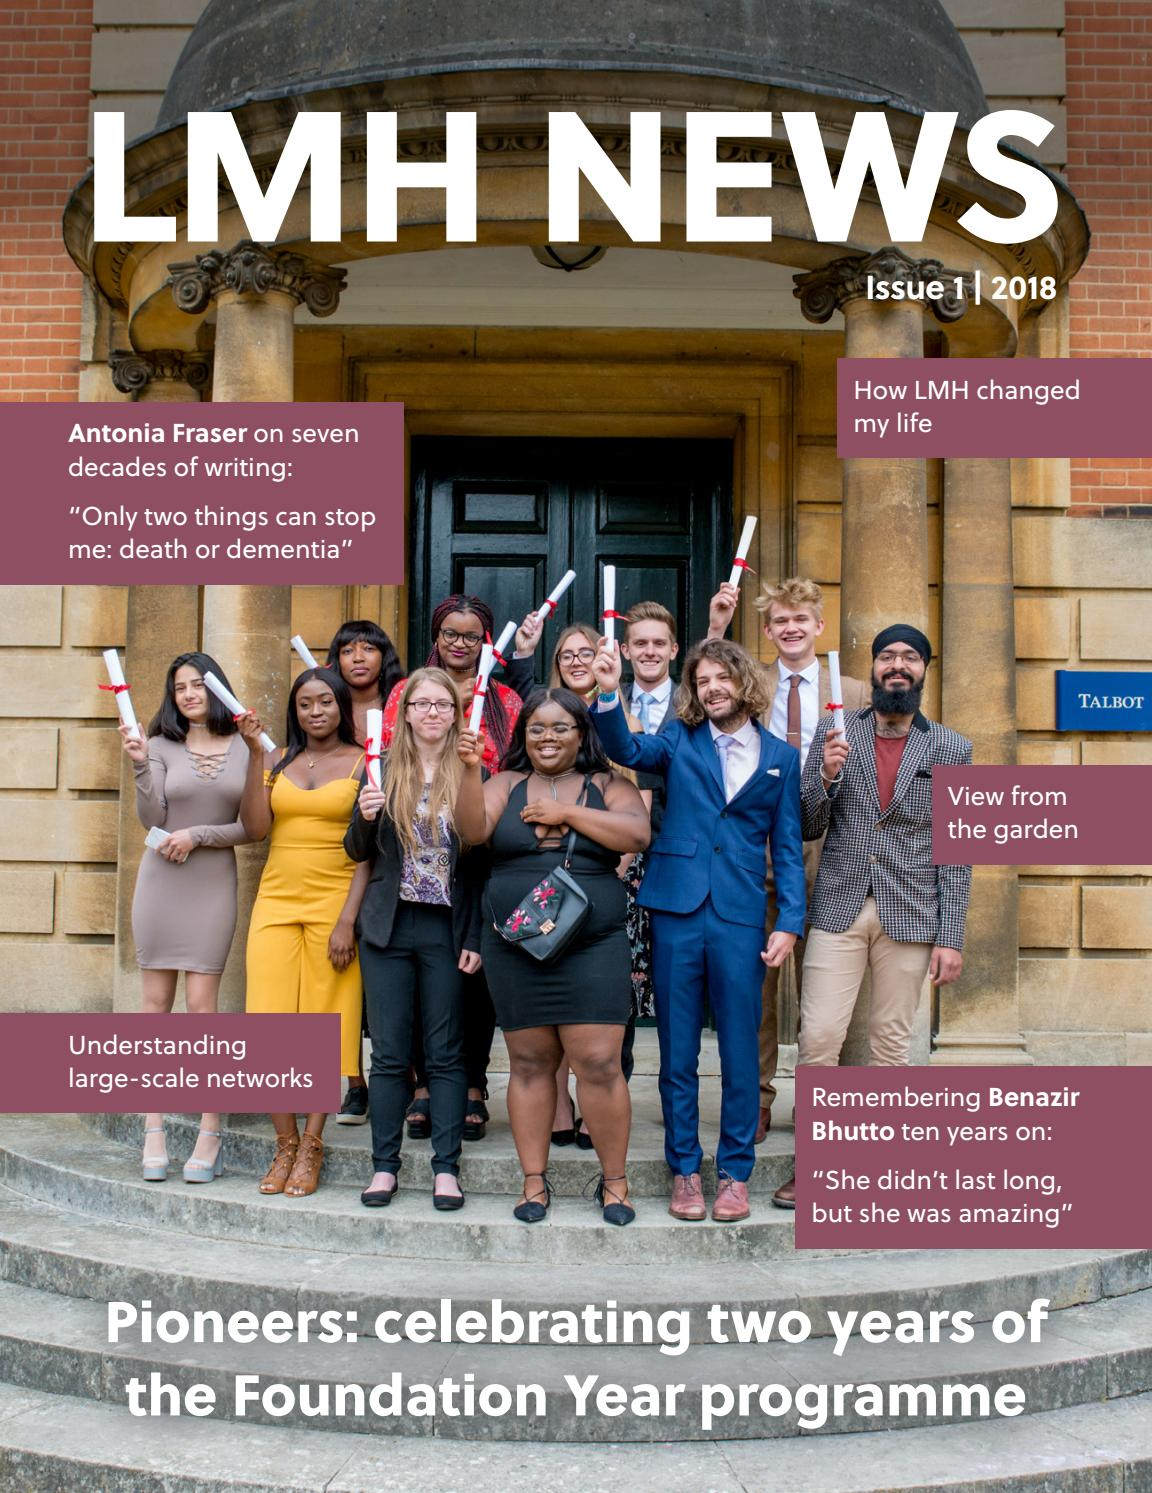 Lmh News – Issue 1 2018Ciconi Ltd – Issuu With Regard To James City School 2021/2010 Calendar